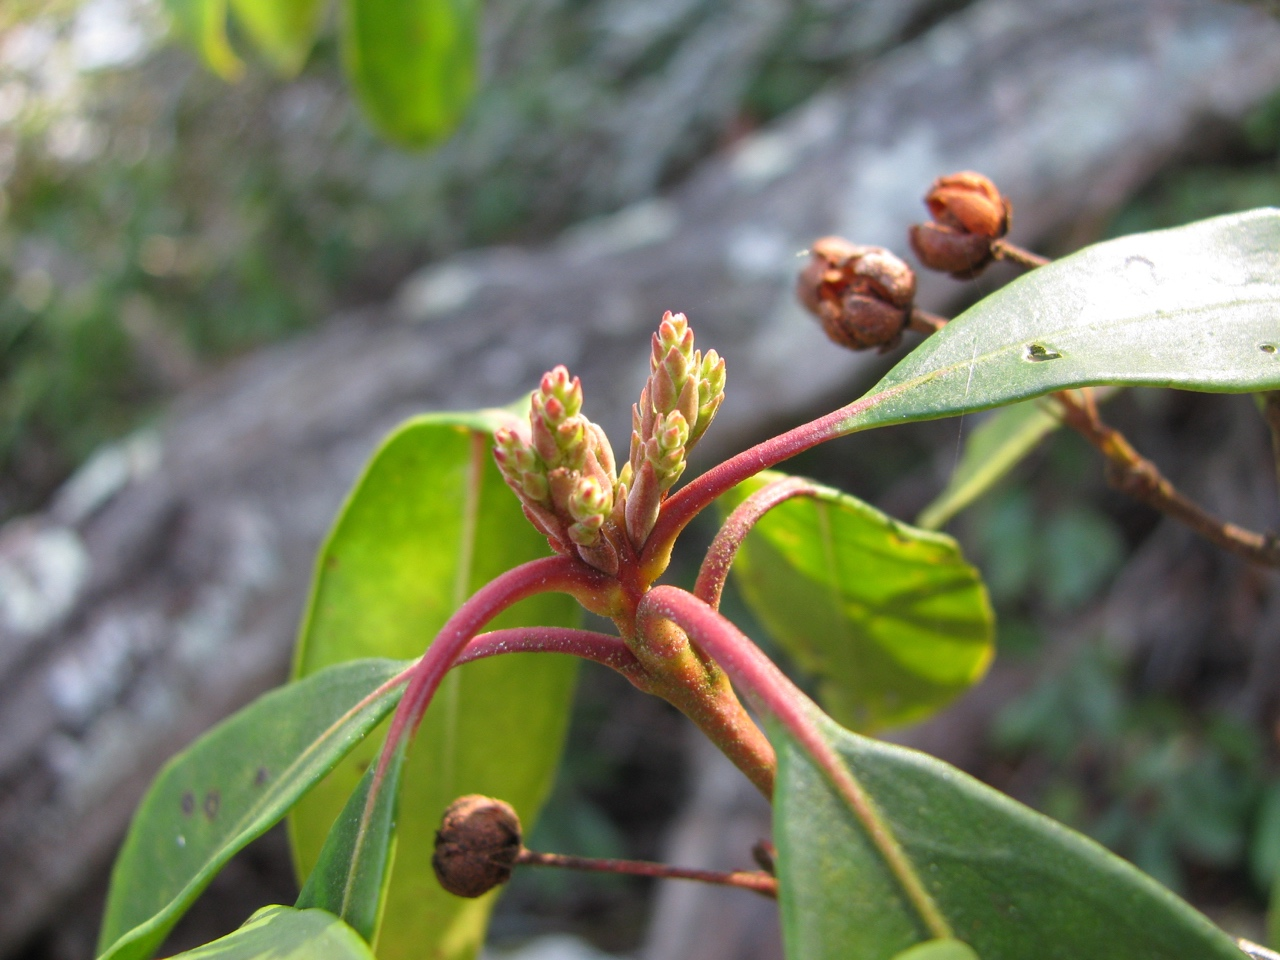 The Scientific Name is Kalmia latifolia. You will likely hear them called Mountain Laurel, Ivy, Calico-bush. This picture shows the Developing flower buds in early March. Also present are previous years fruit (capsule.)  of Kalmia latifolia